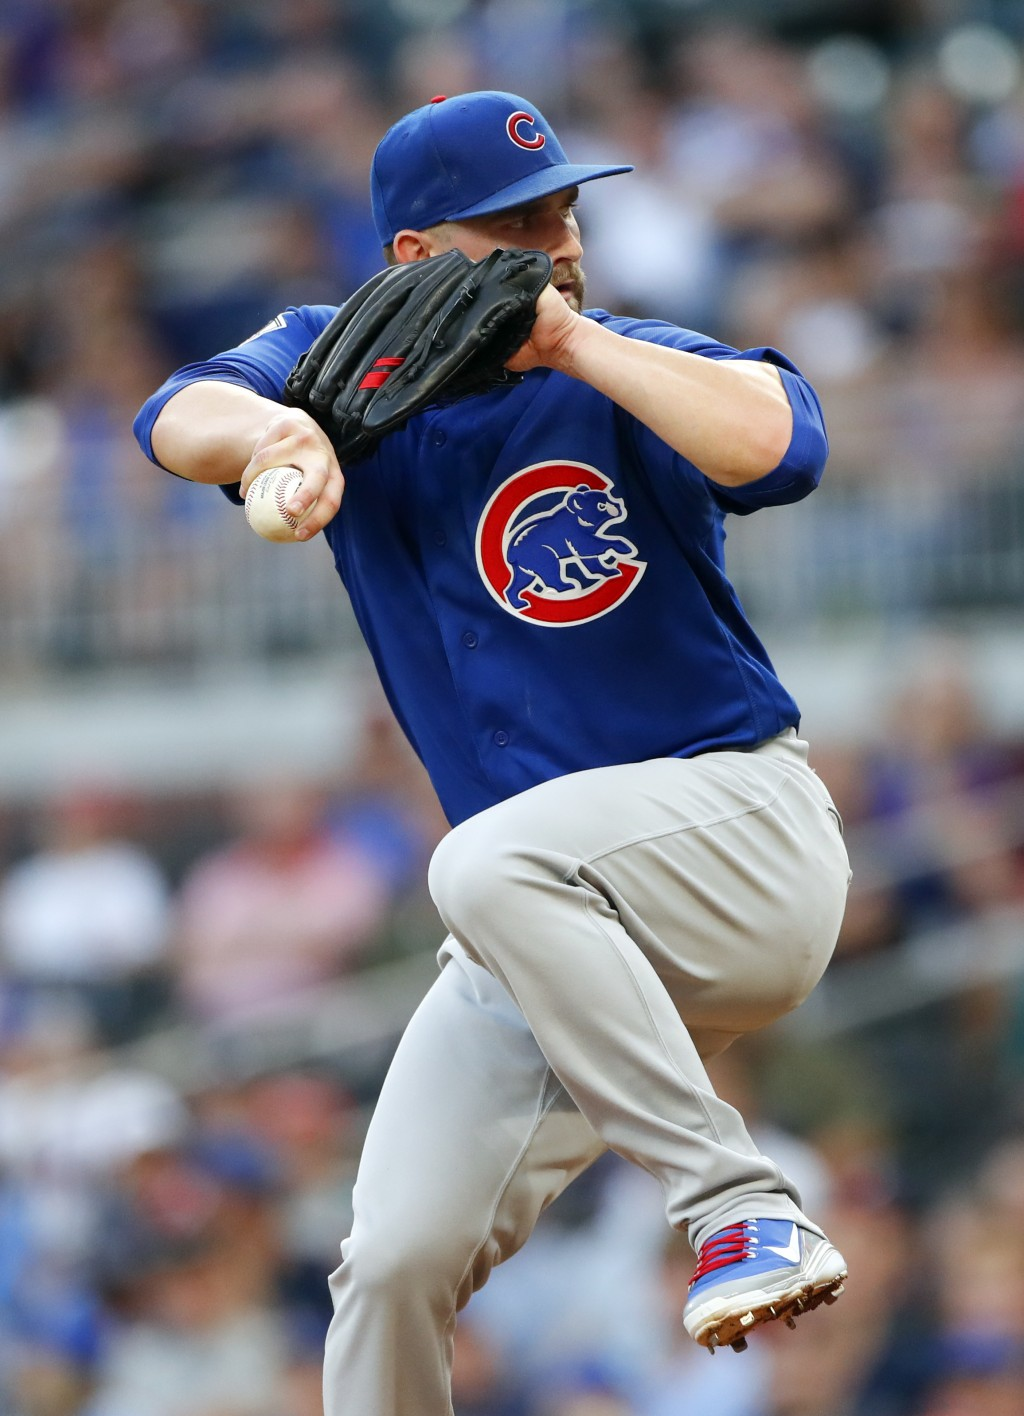 Chicago Cubs starting pitcher Tyler Chatwood winds up during the first inning of the team's baseball game against the Atlanta Braves on Wednesday, May